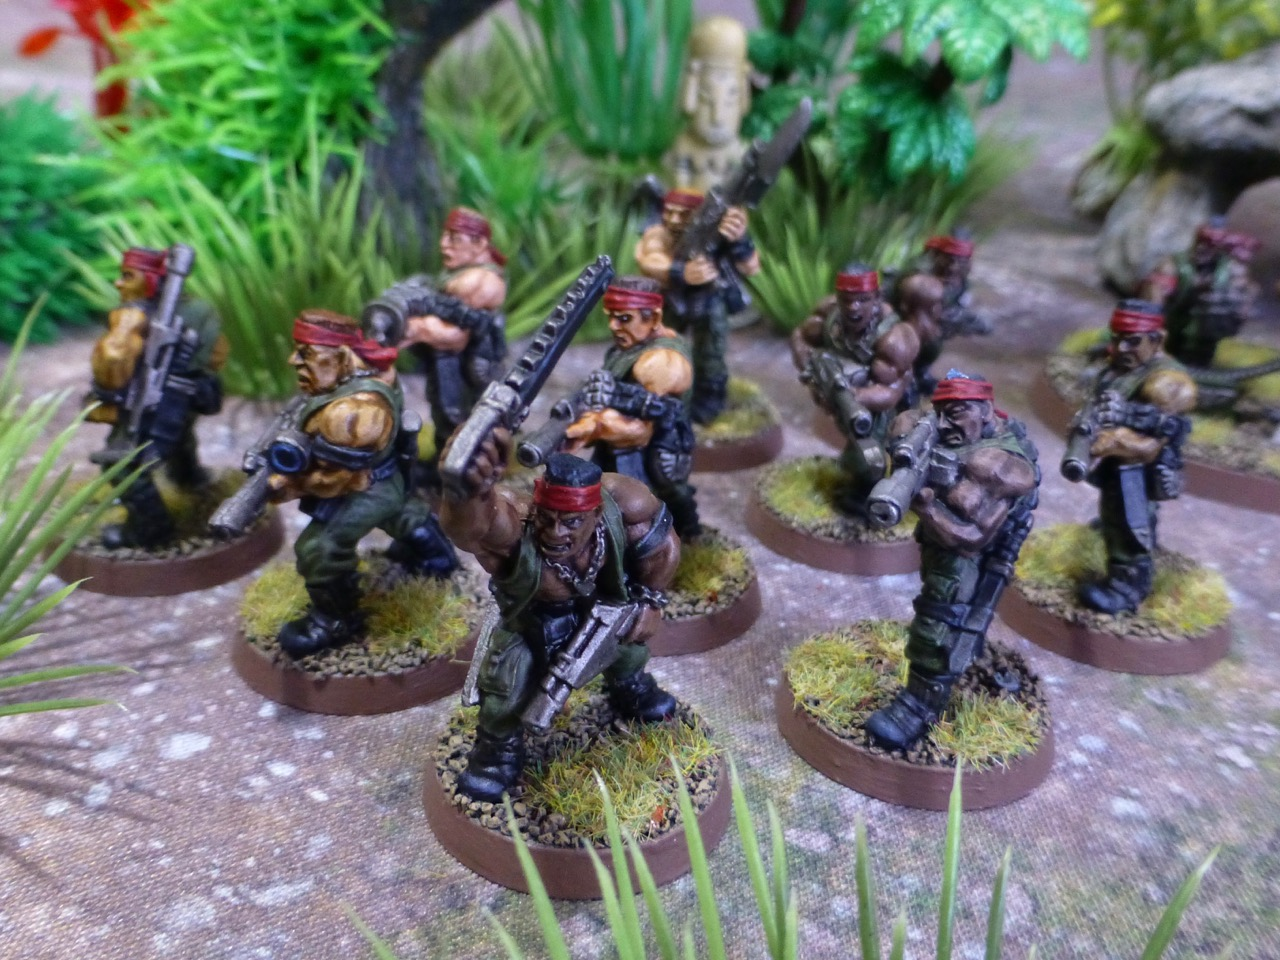 A unit of troopers lead by a sergeant wielding a chainsword